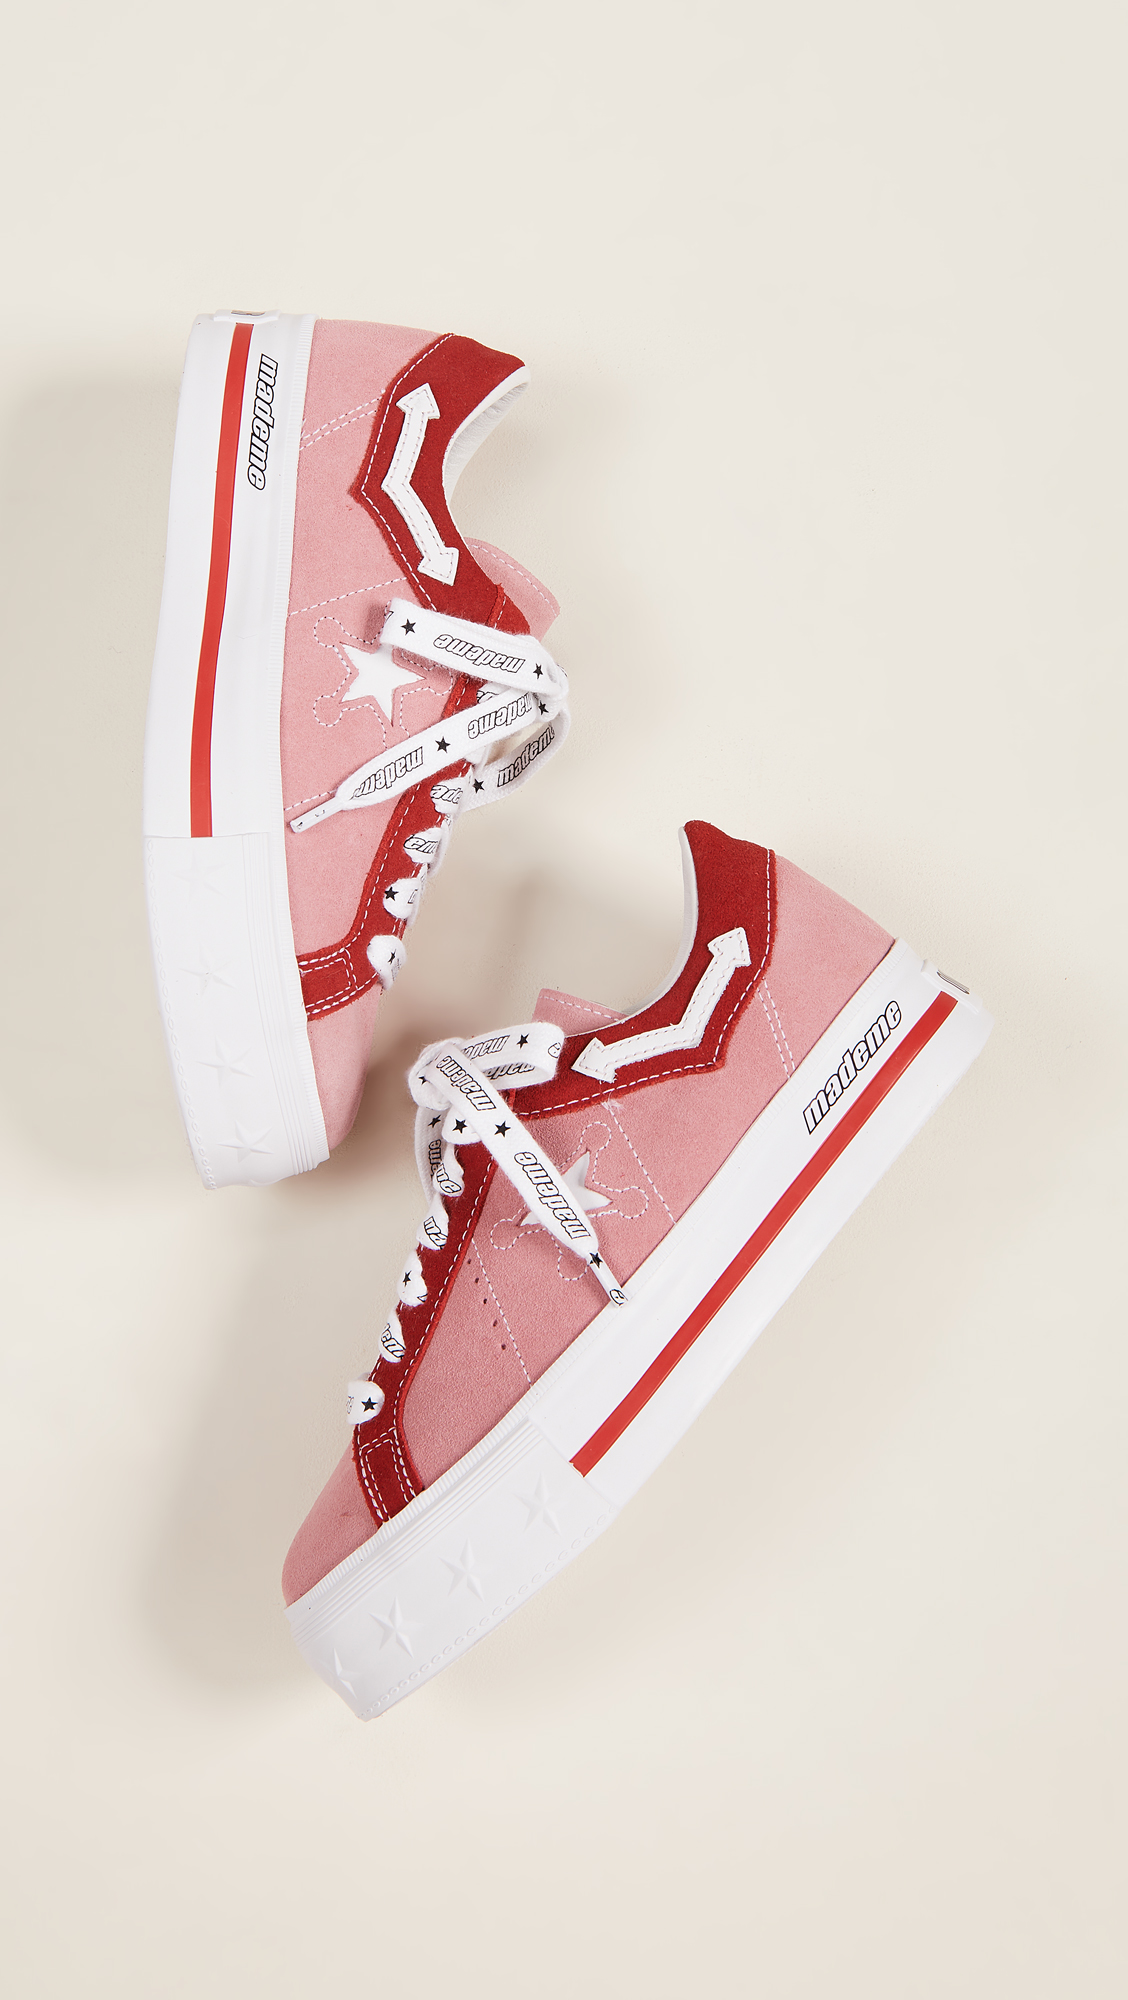 3d124f24c83 Converse x MadeMe One Star Lift Platform Sneakers